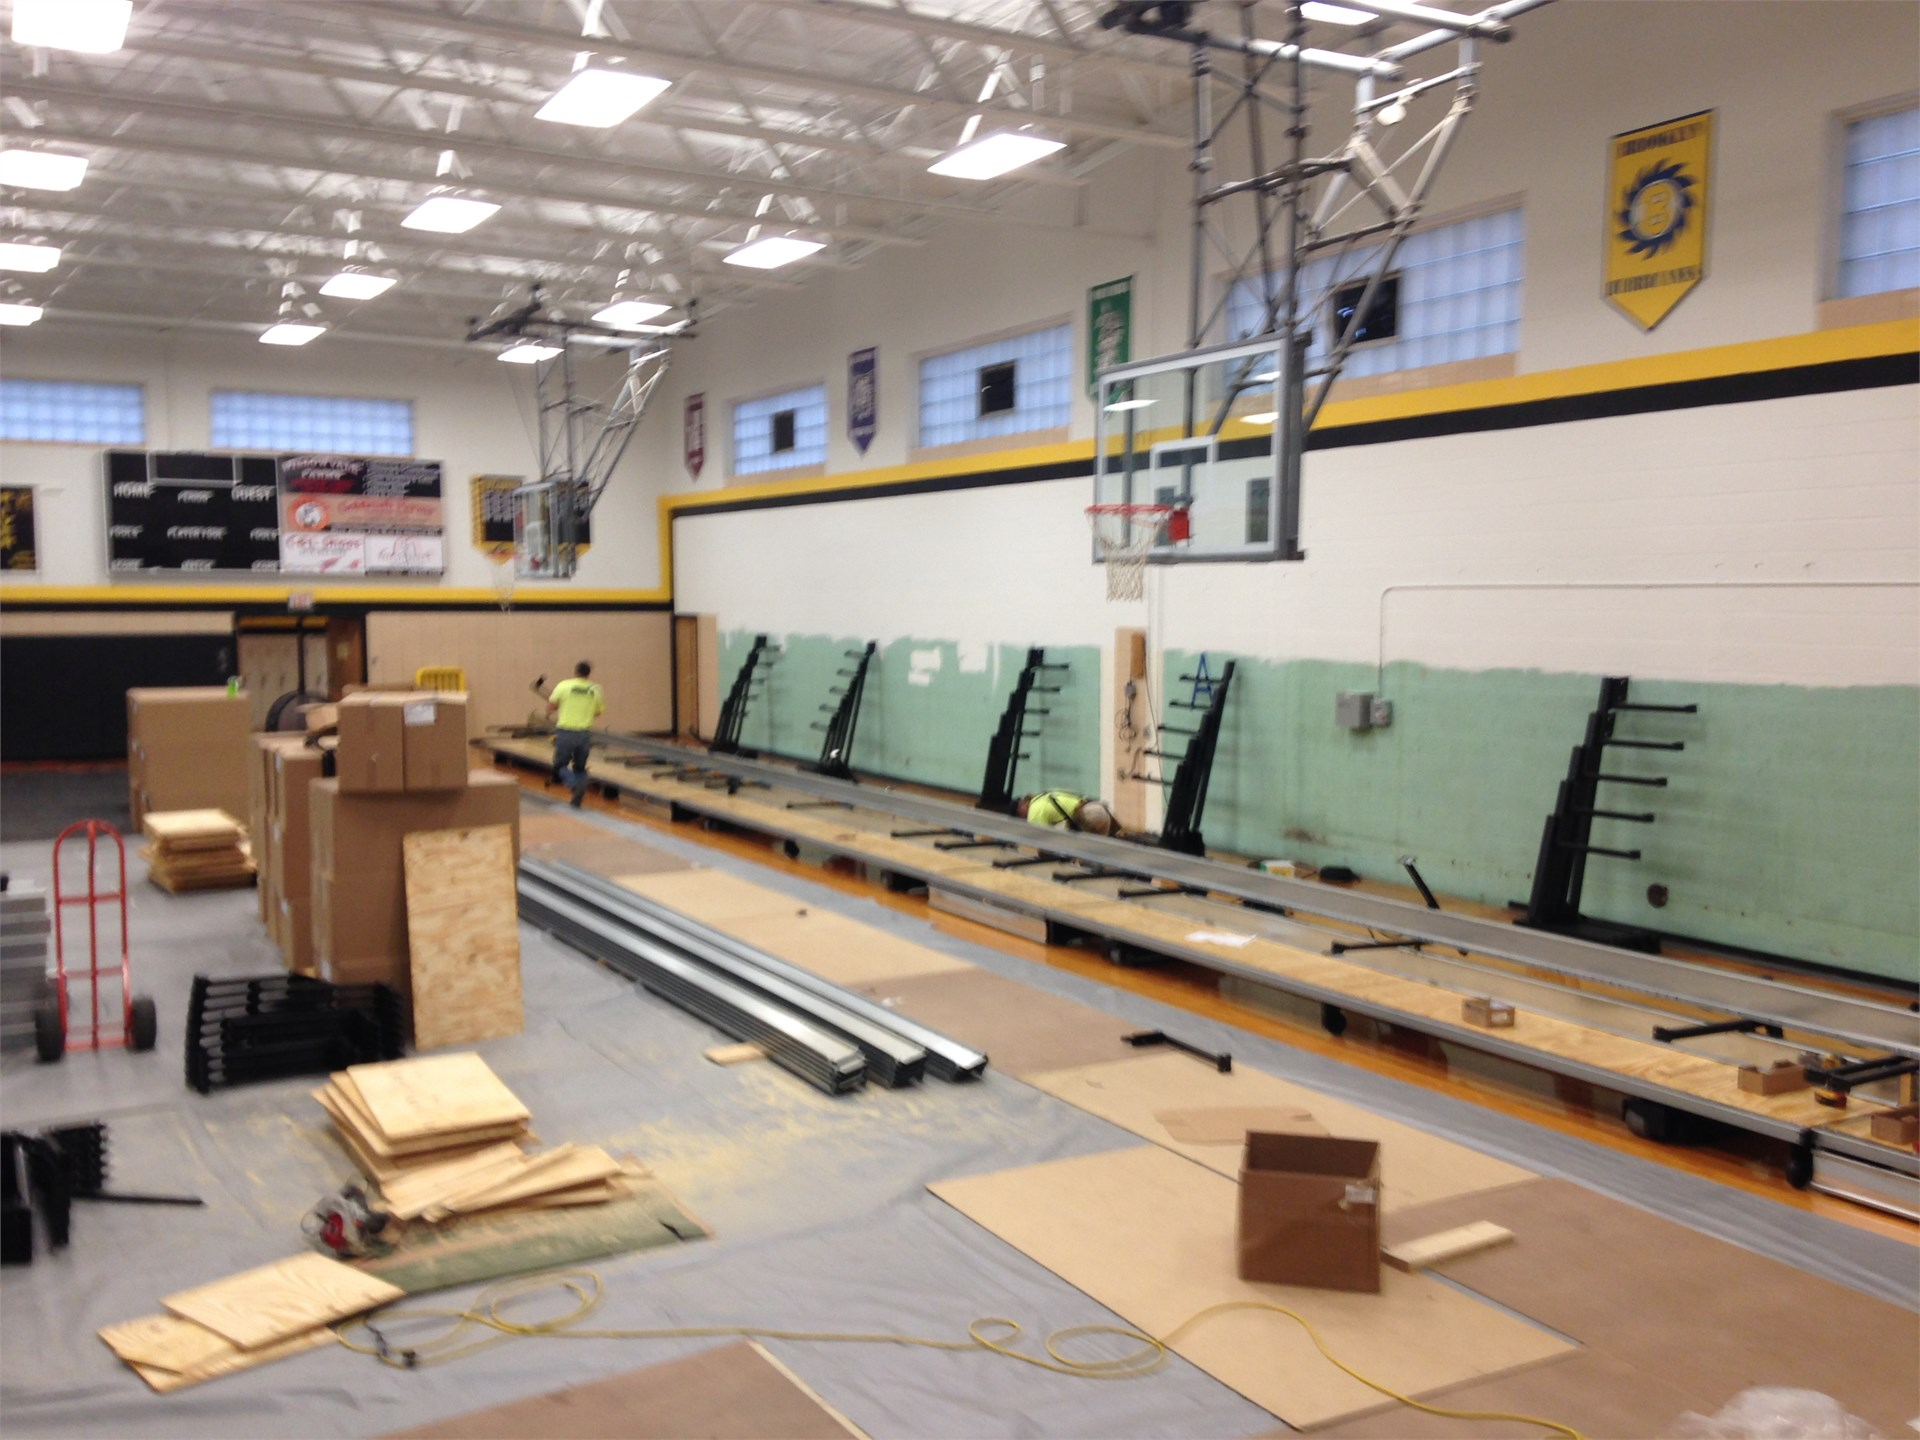 First row of bleachers being assembled.